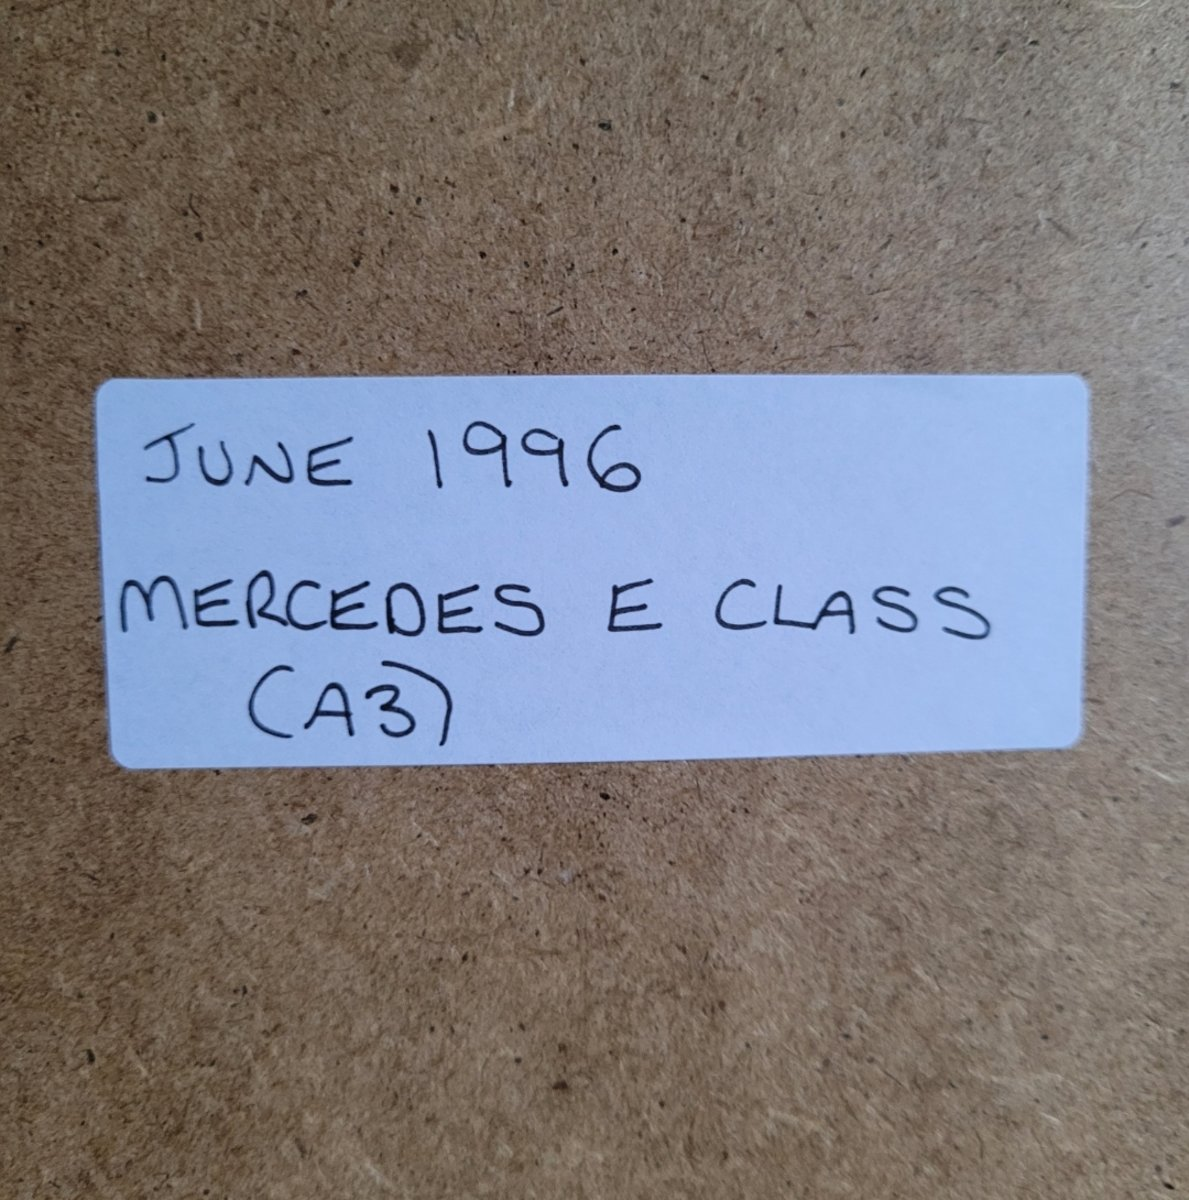 1967 Original 1996 Mercedes E Class Framed Advert For Sale (picture 2 of 3)